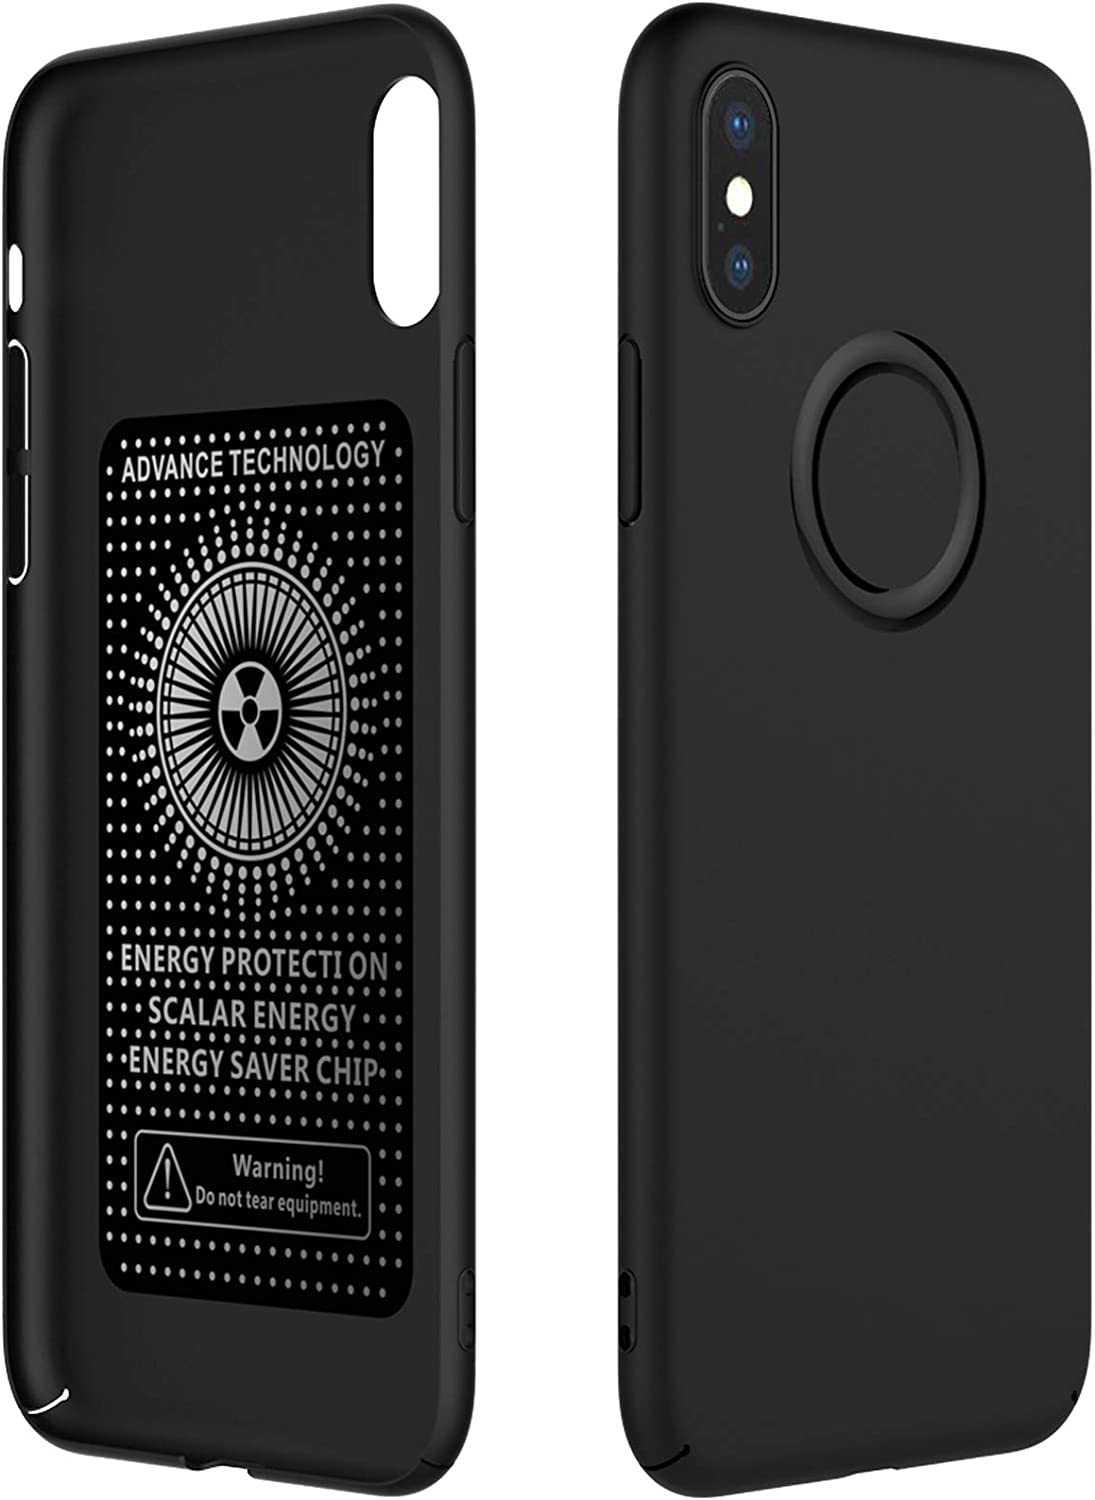 YUEKAI iPhone Xs Max Case, Anti Radiation Cell Phone Case, 99% EMF Protection and Negative Ion Energy, Full Body Protection Ultra Slim Hard Case Cover for Apple iPhone Xs Max 6.5 Inch - Black